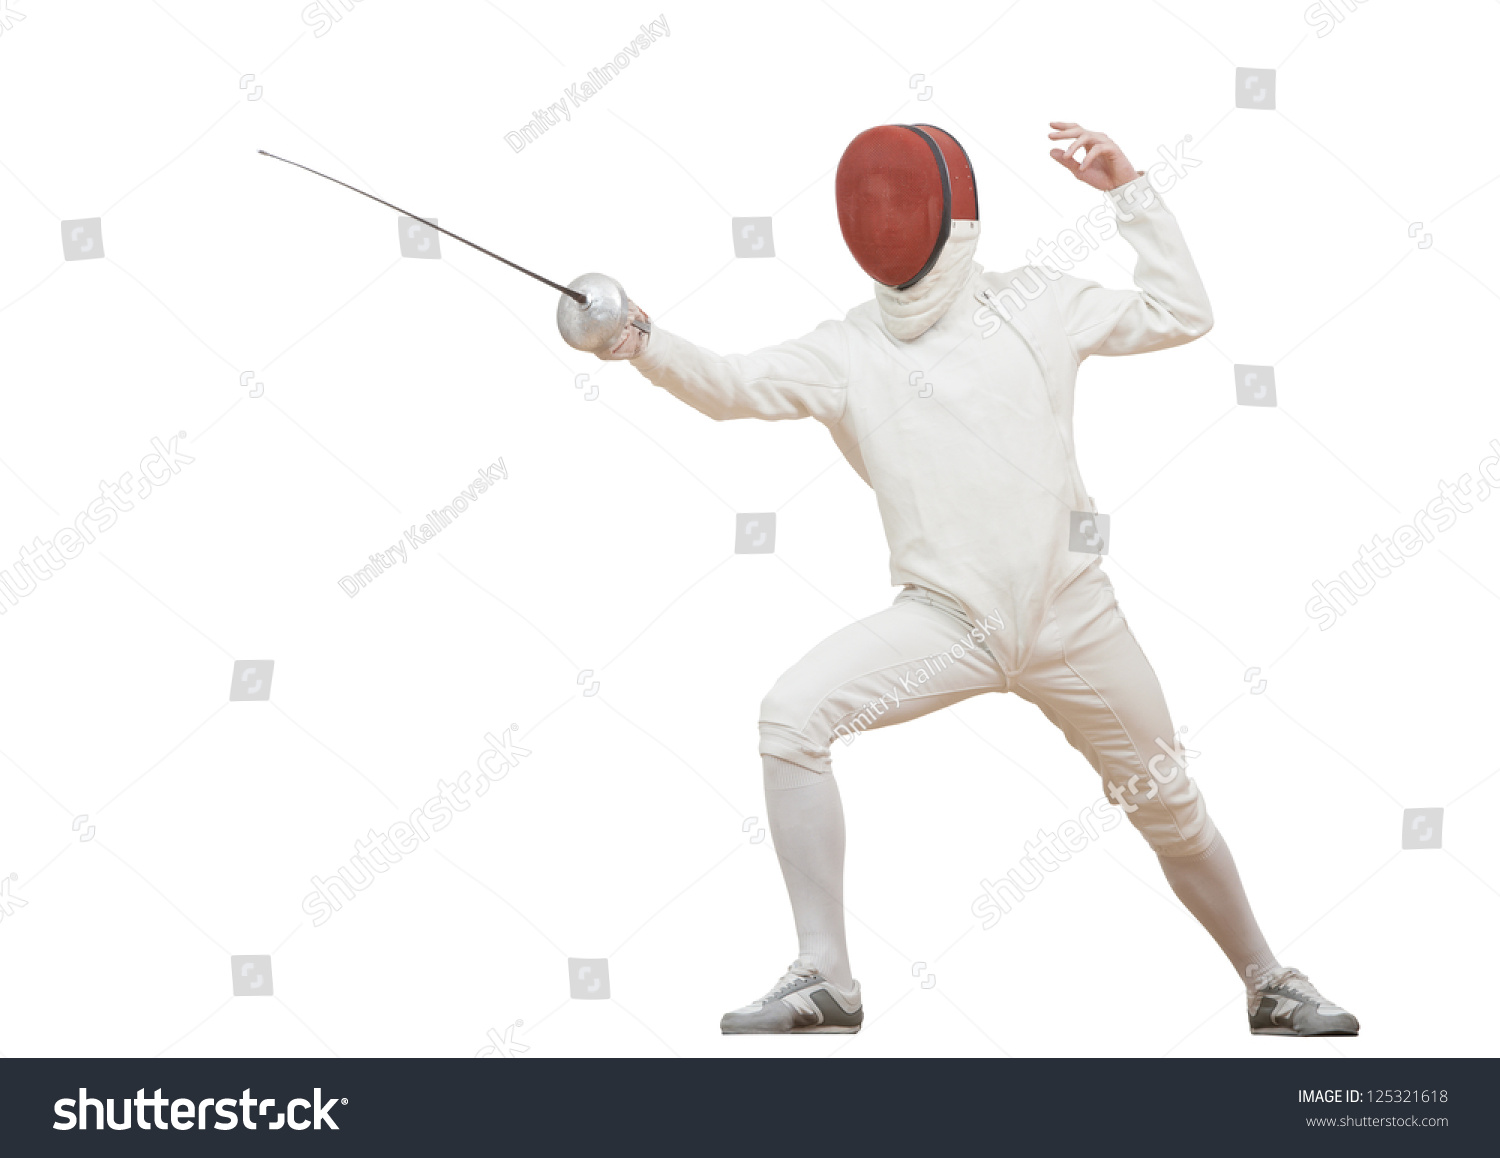 Fencing Outfit Stock Photos Fencing Outfit Stock – Wonderful